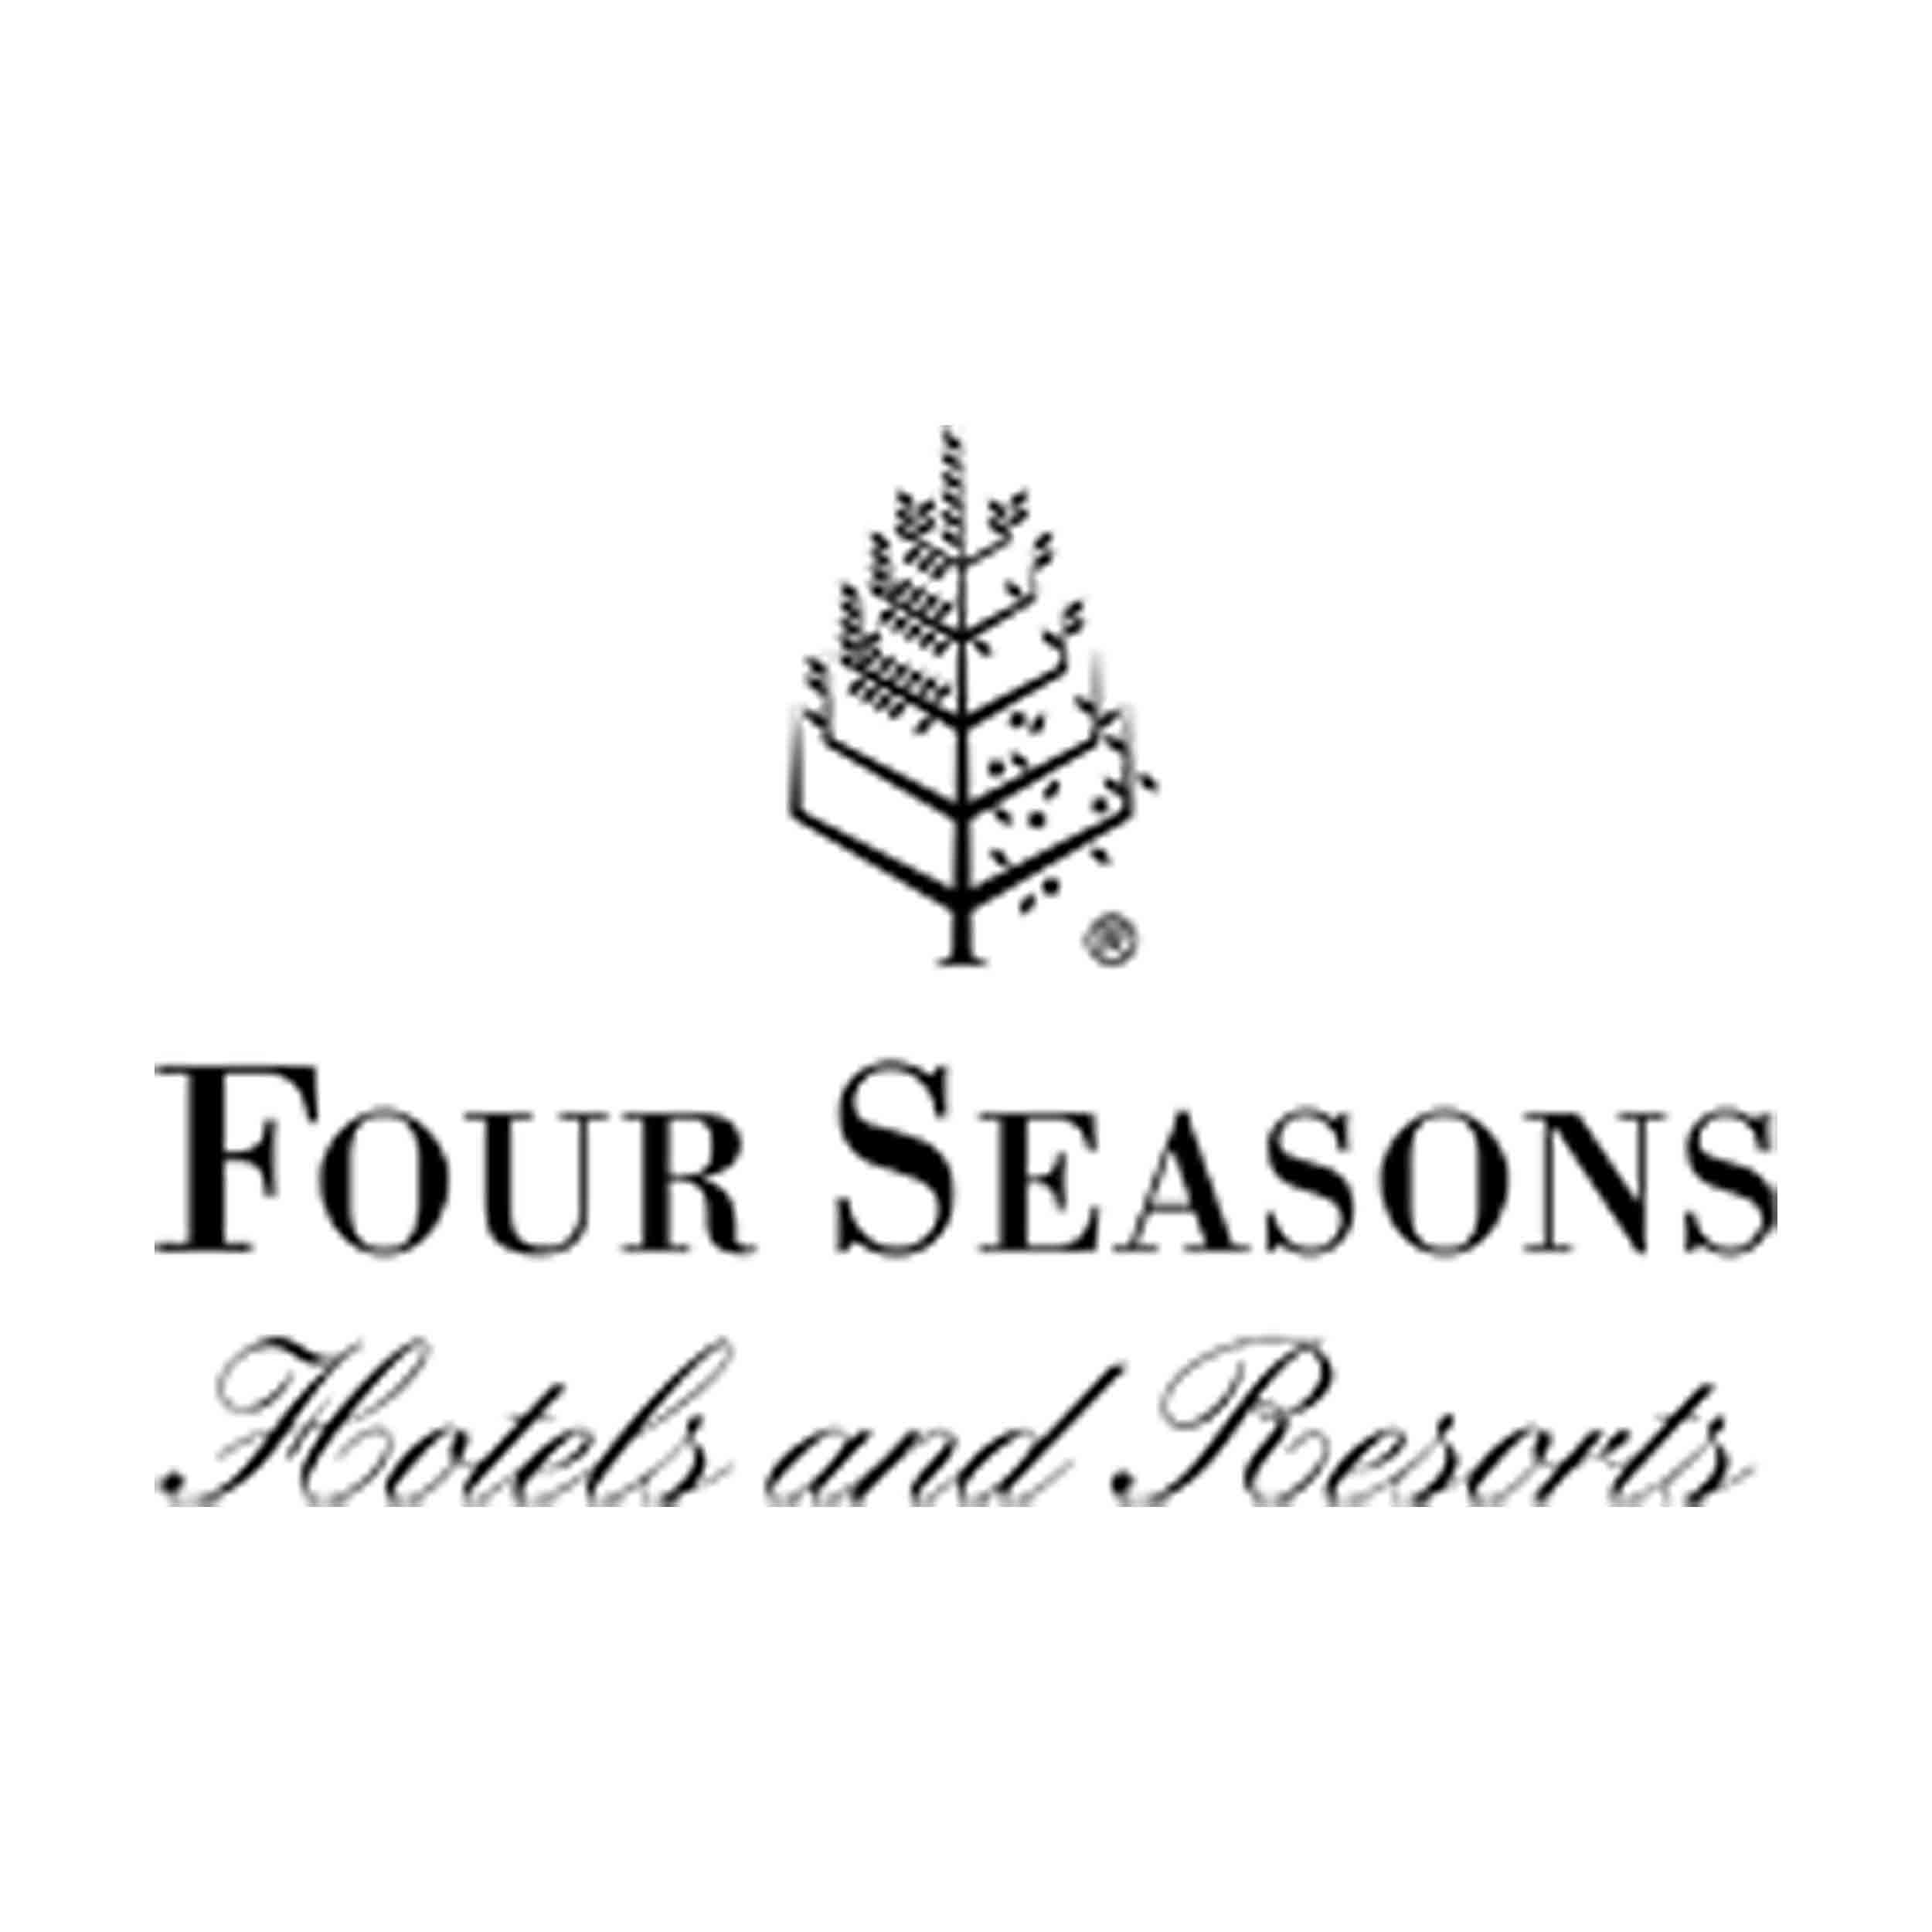 1200px-Four_Seasons_Hotels_and_Resorts.jpg